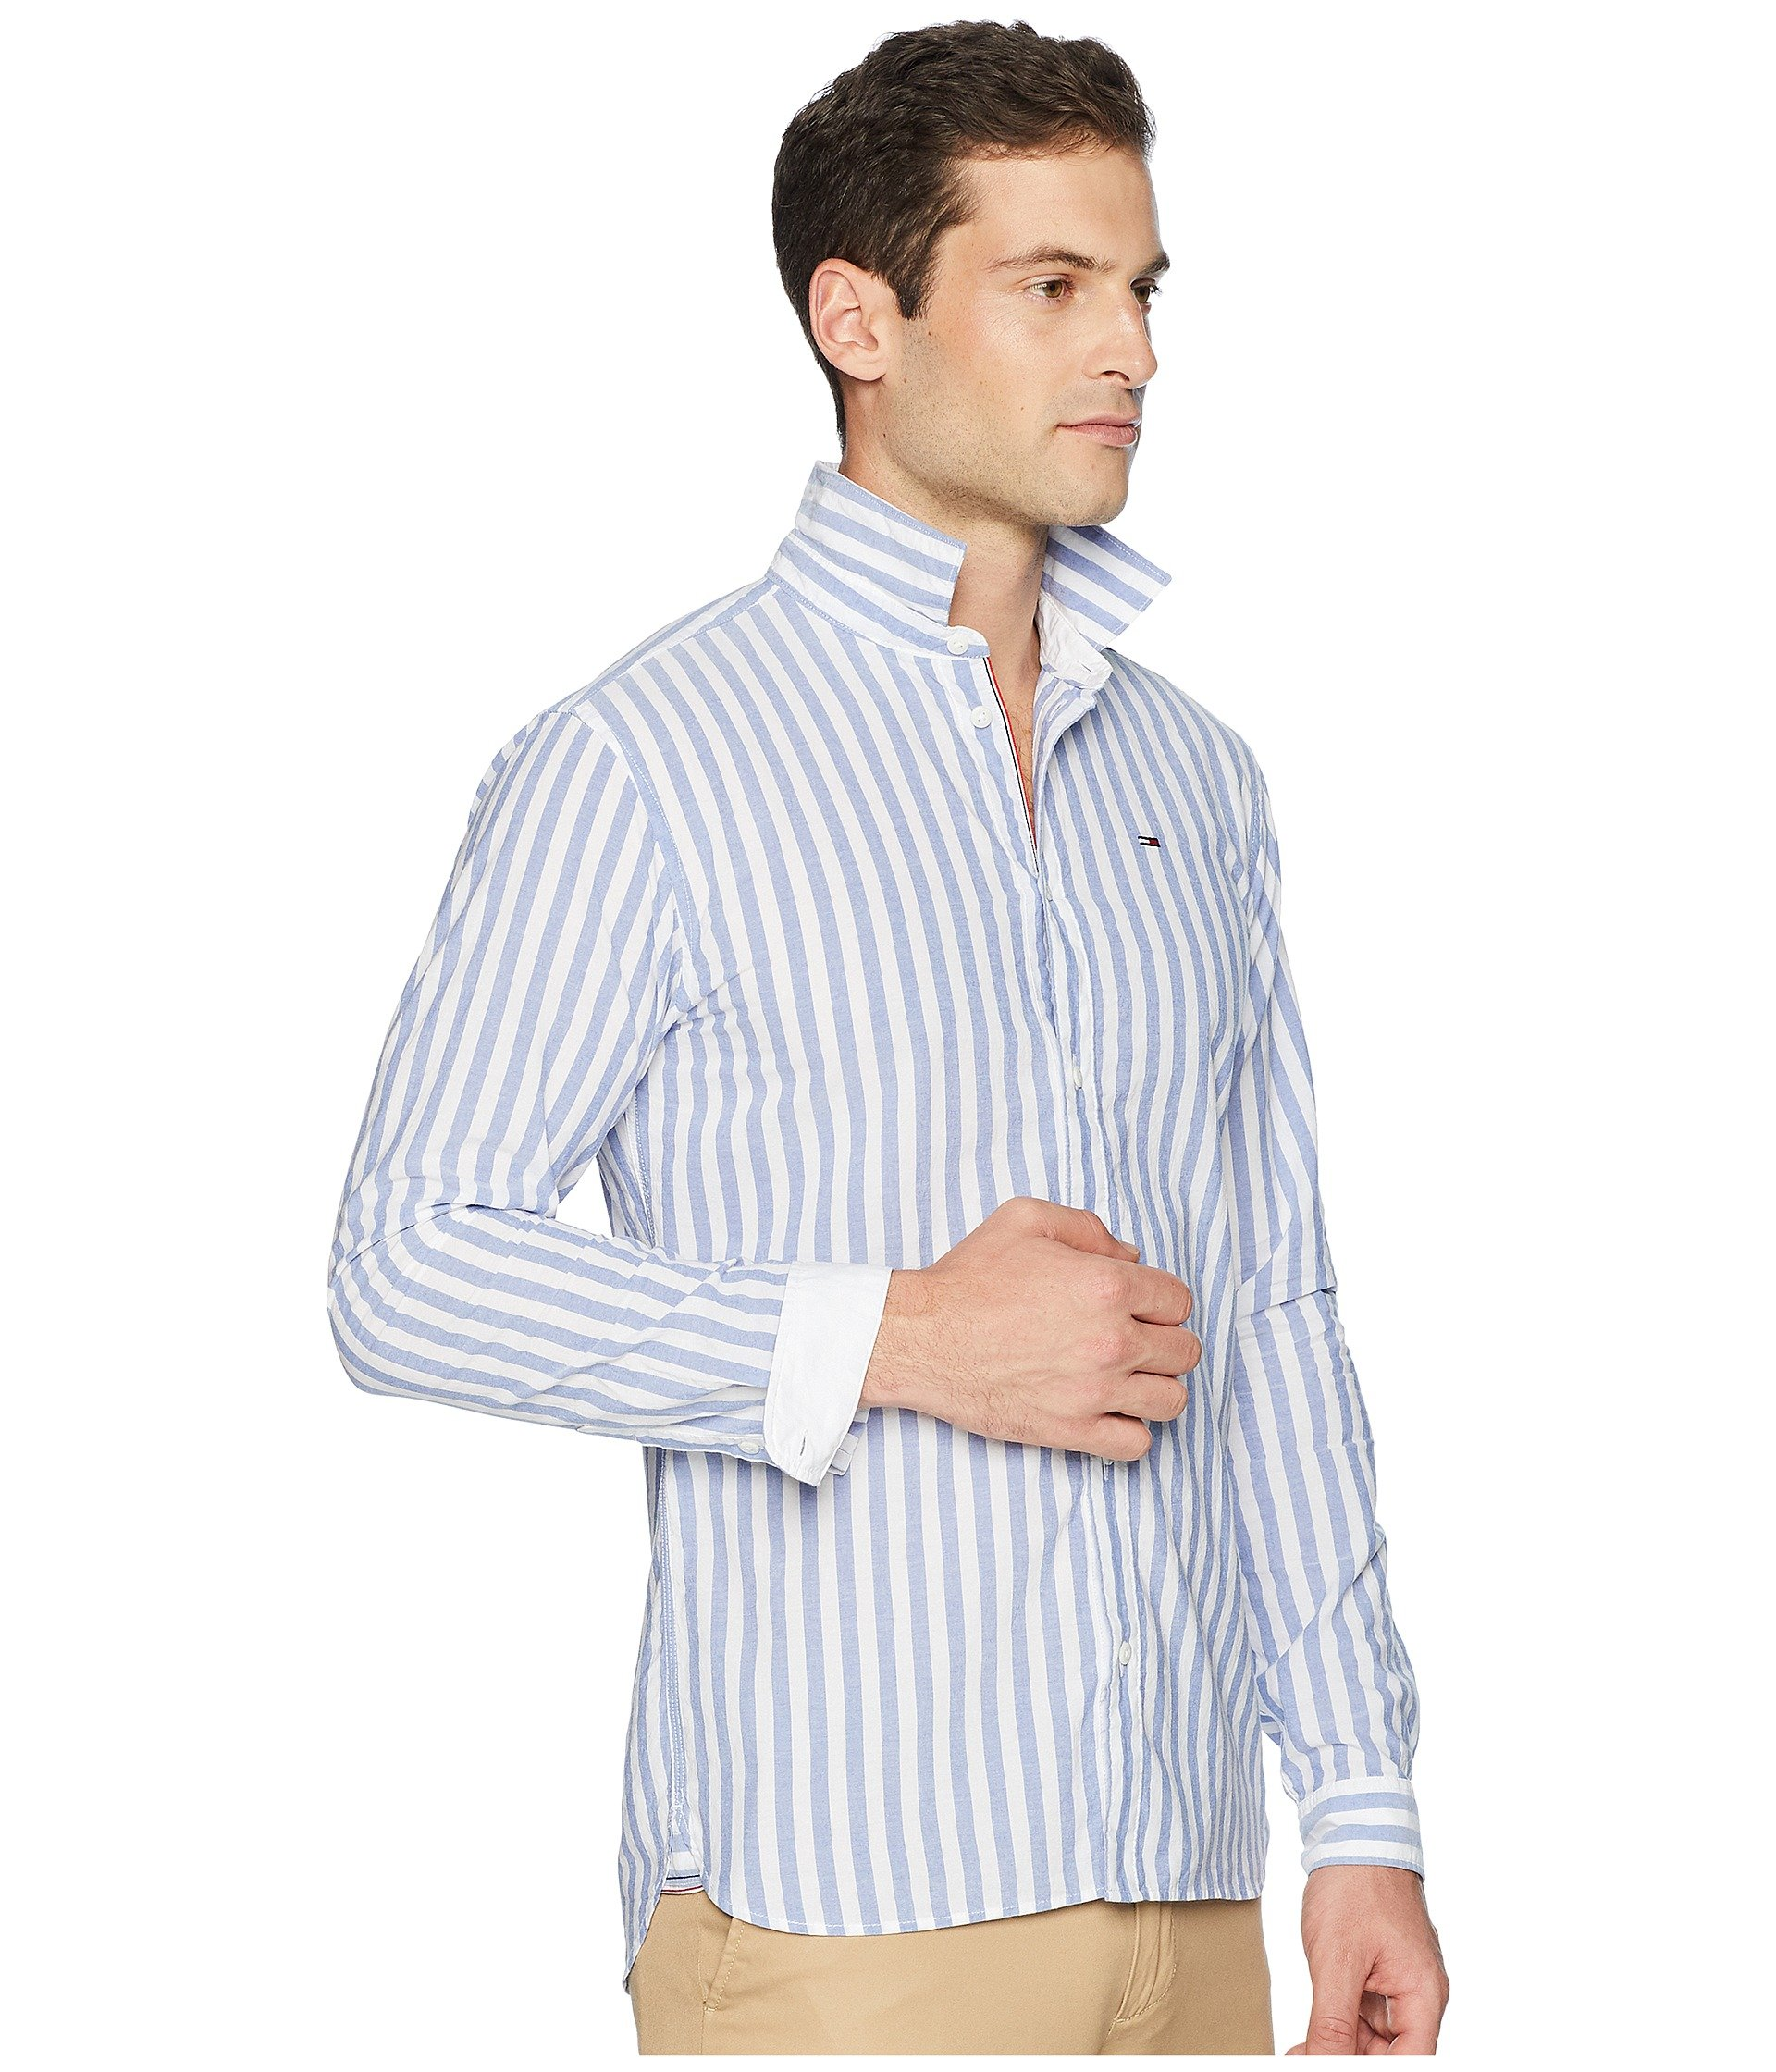 Shirt bold Tommy Jeans Essential Classic White Stripe xCFx0wqURt